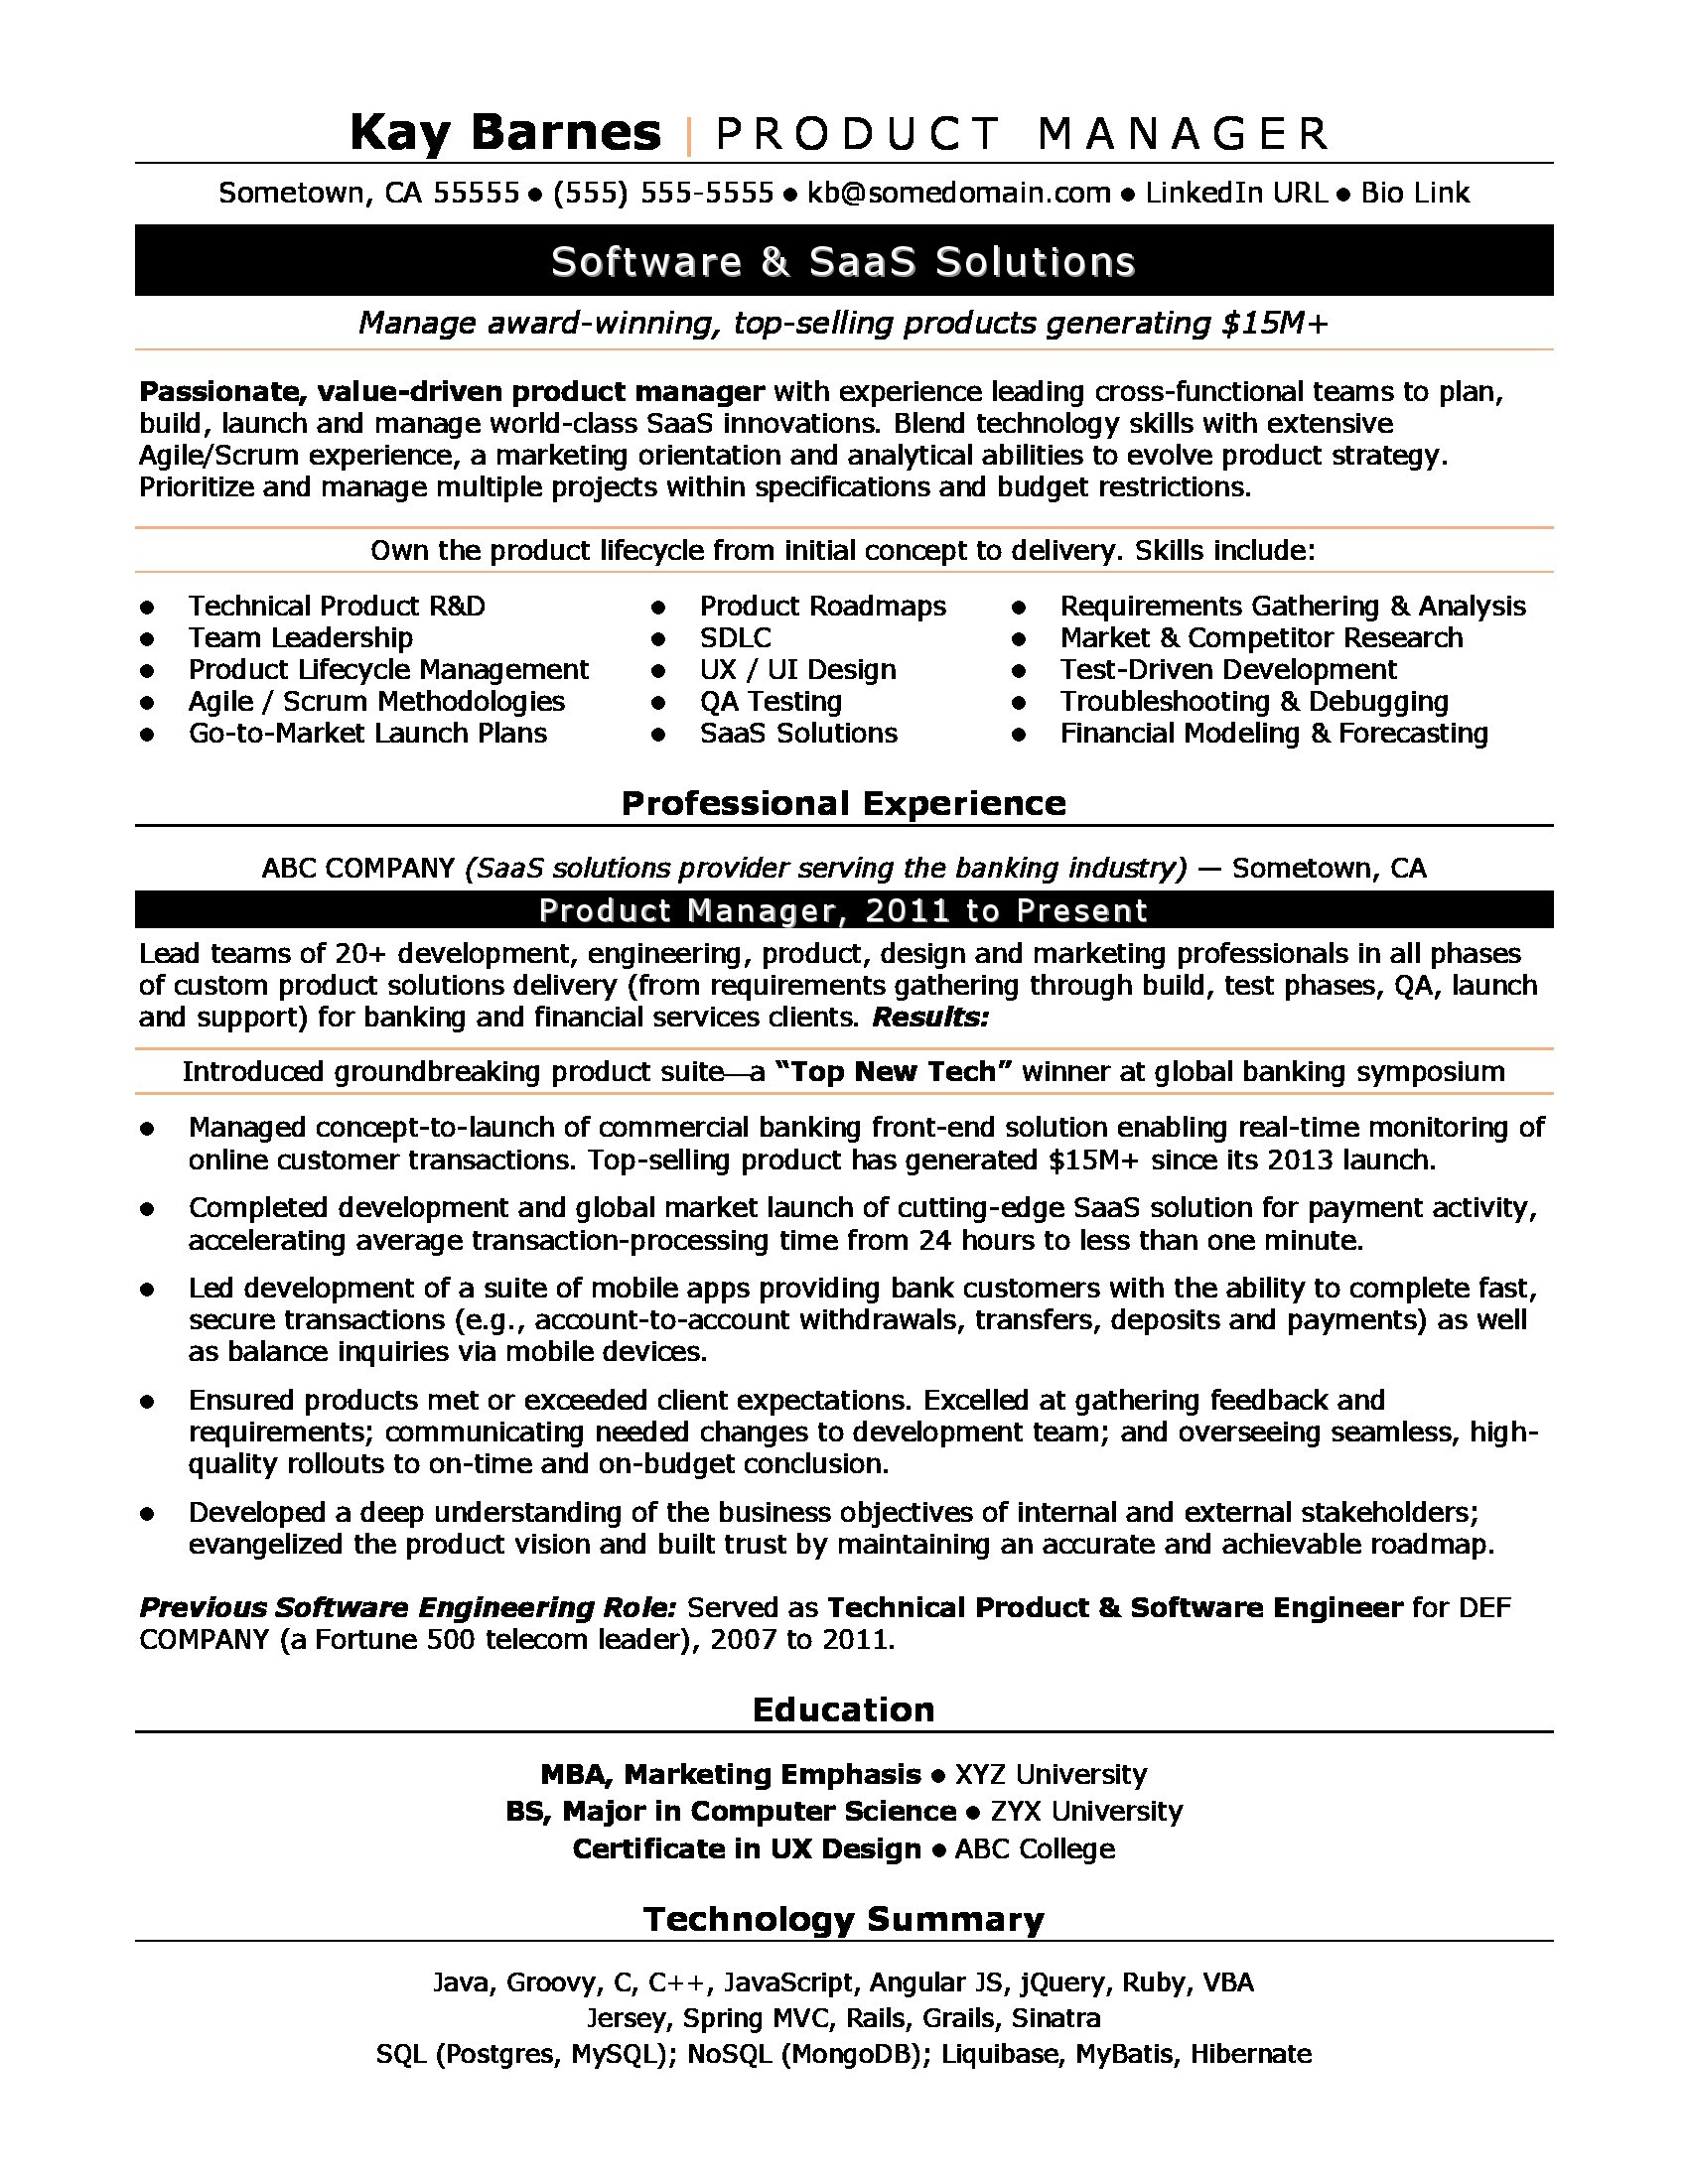 product manager resume sample - Customer Success Manager Resume